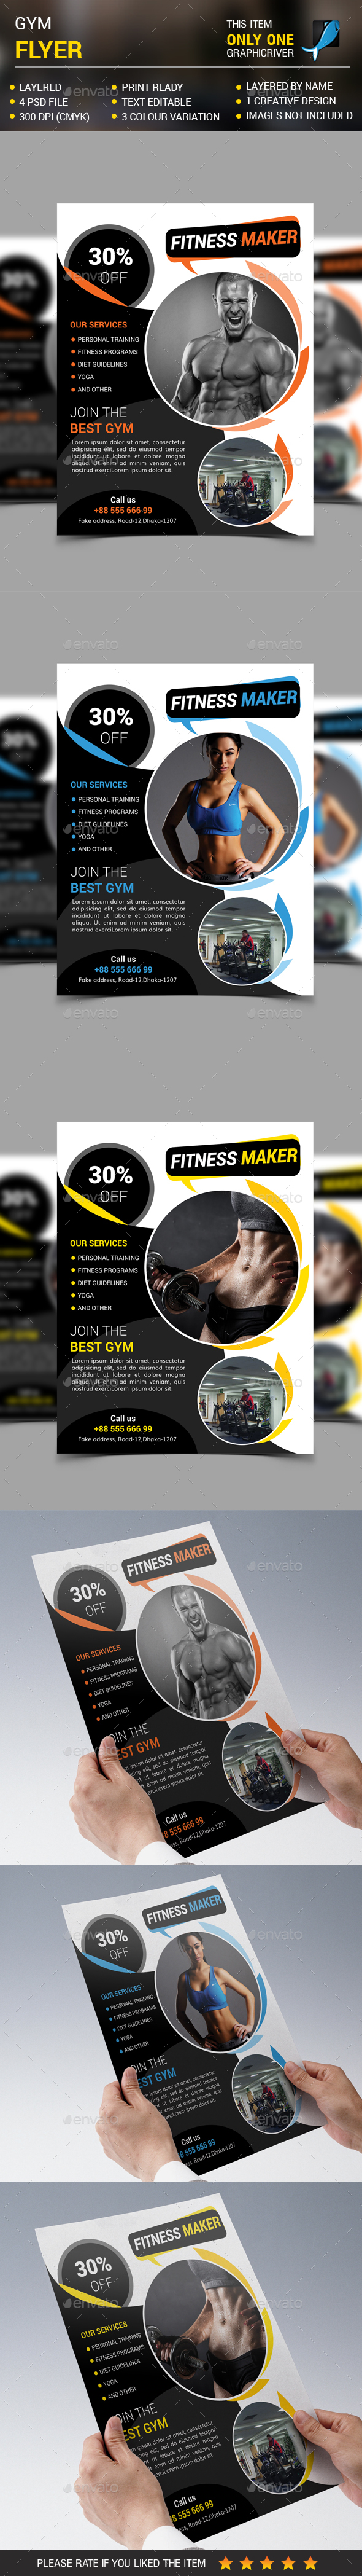 Fitness & Gym Flyer vol 4